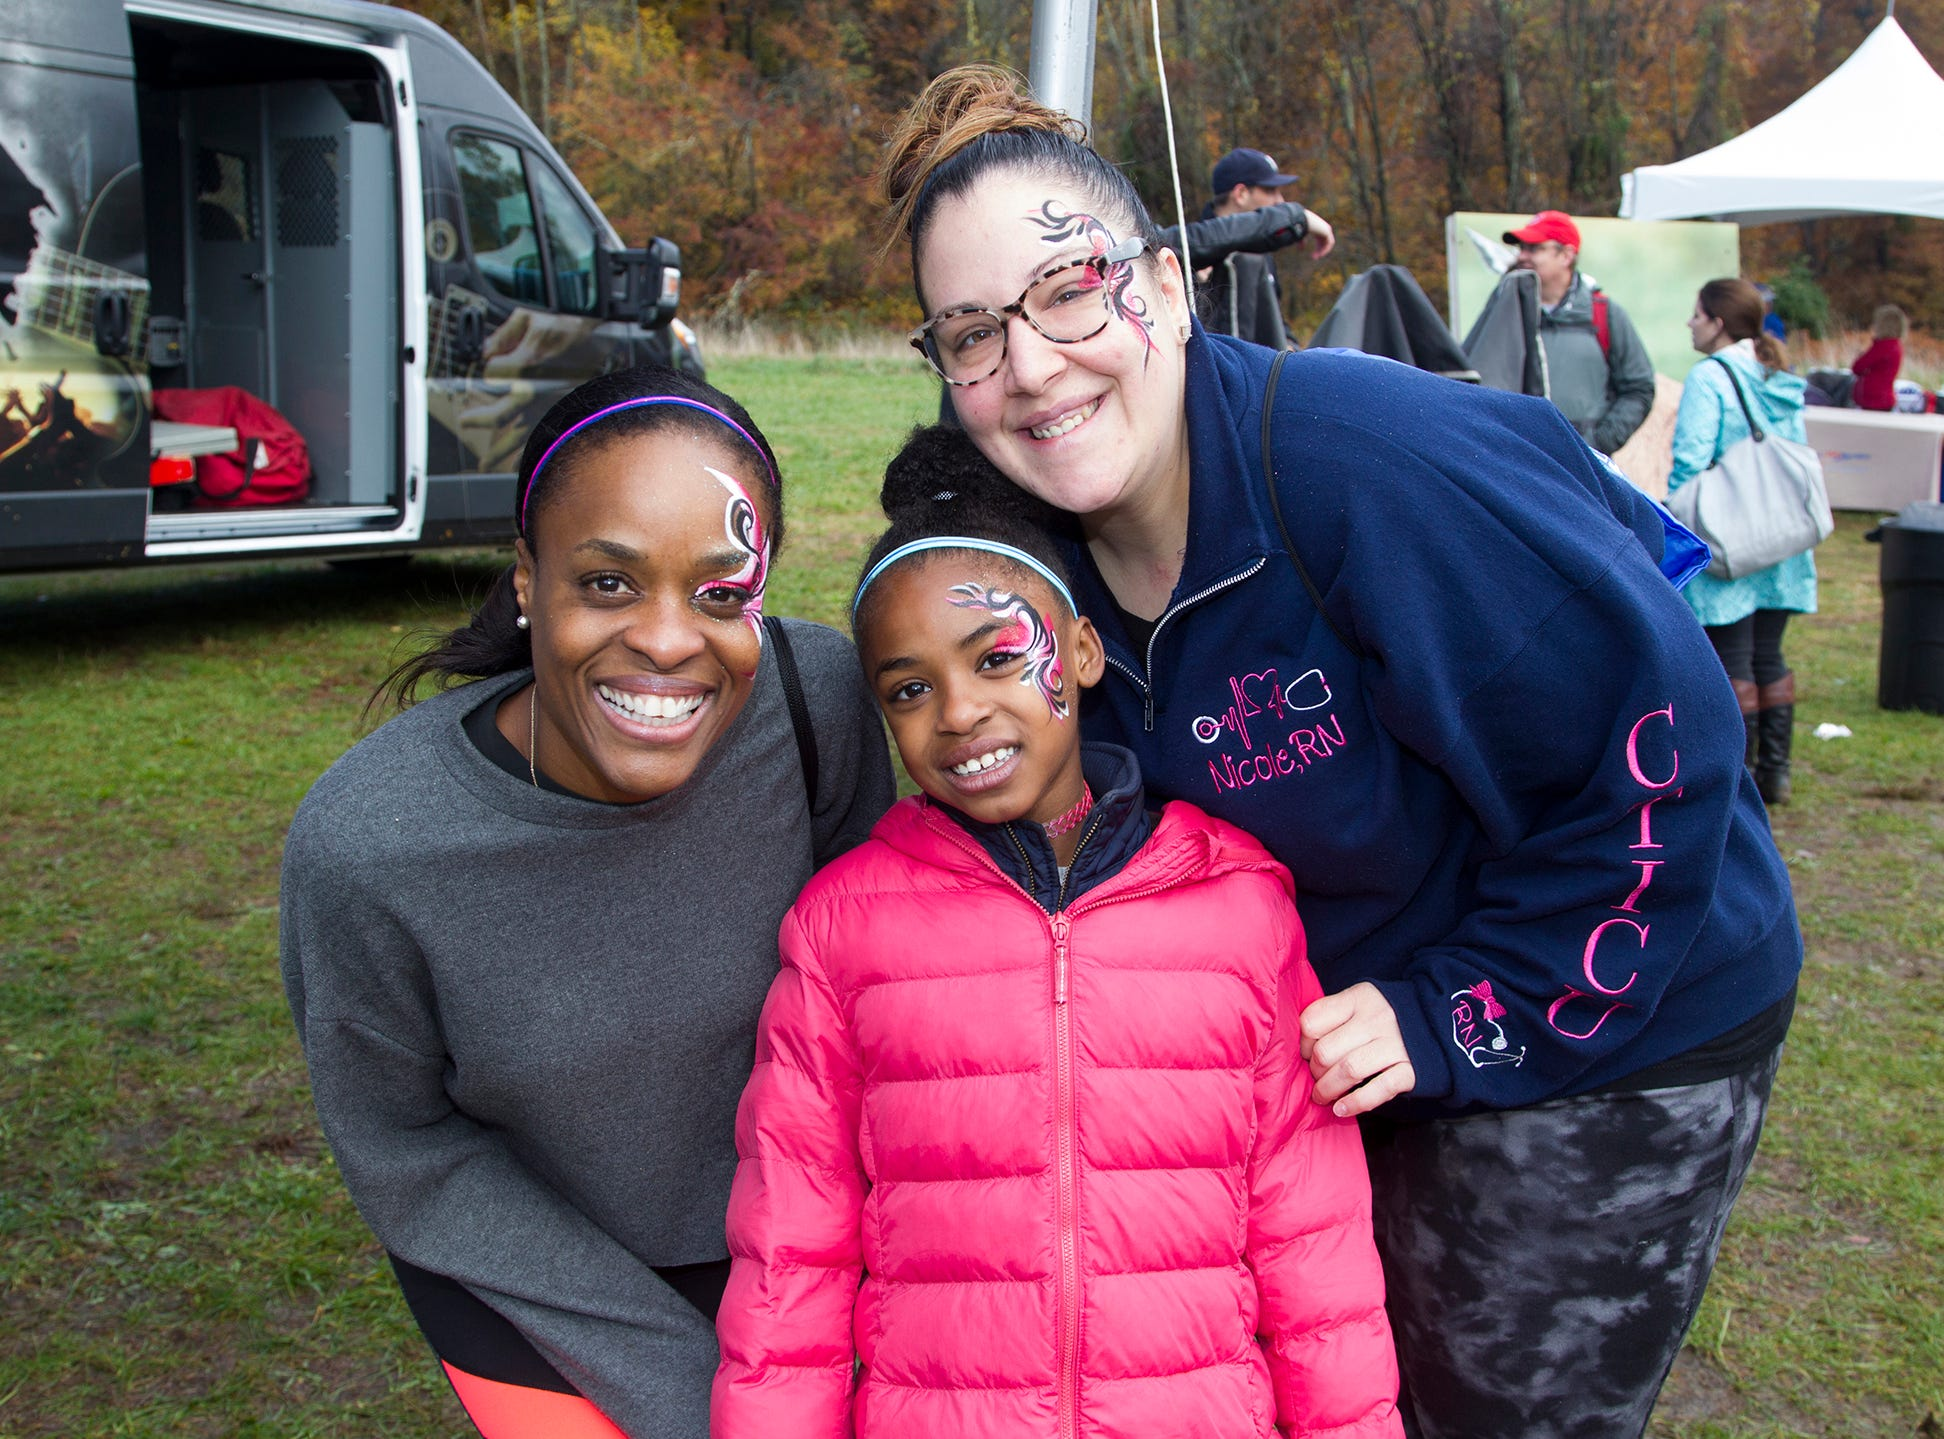 Natasha, Nicole, Erin. RWJBarnabas Health Running with the Devils 5K Run and Family Fun Walk at South Mountain Recreation in West Orange. 10/03/2018